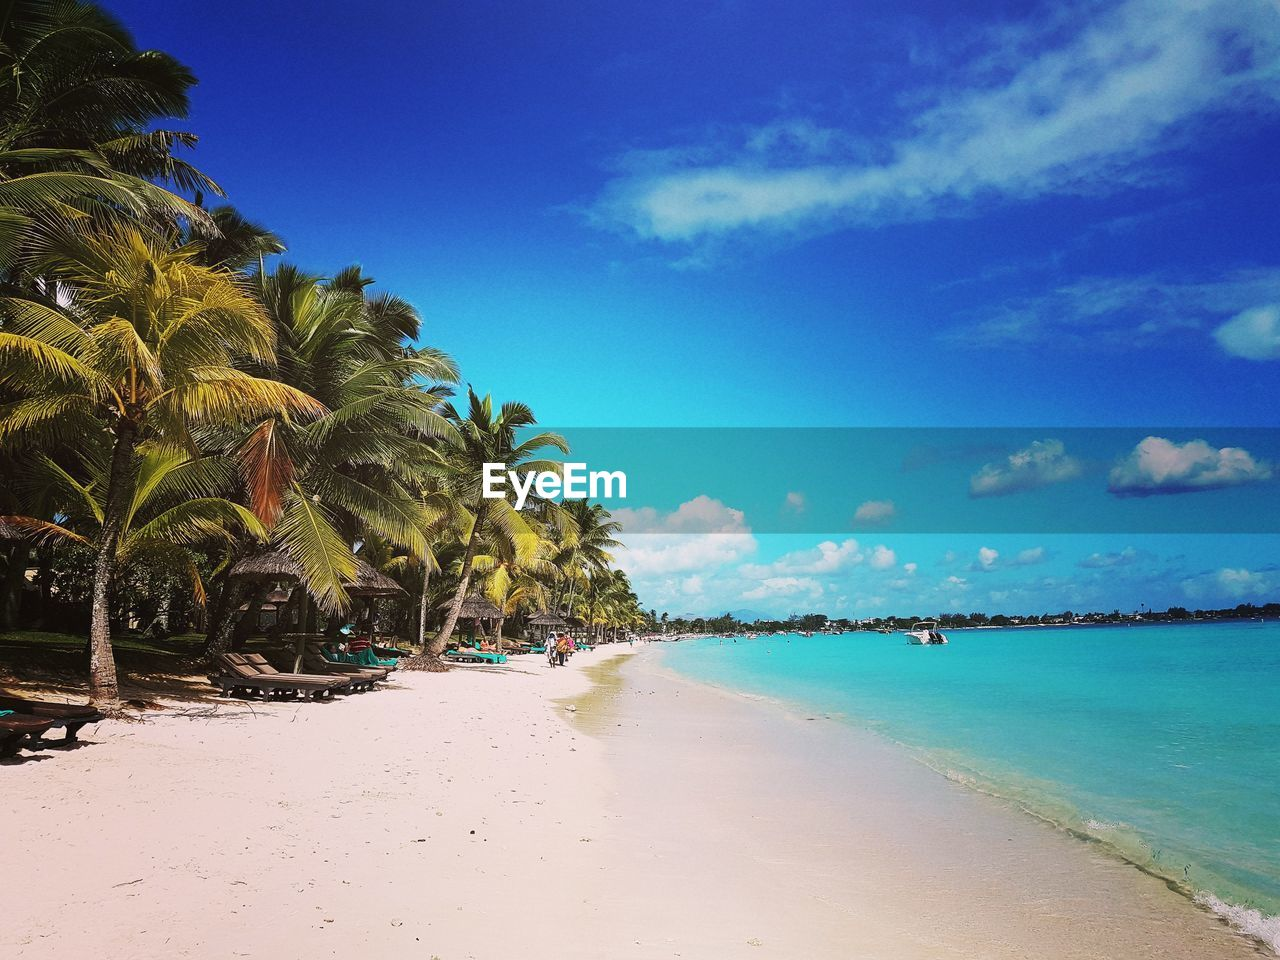 water, sky, sea, beach, land, tree, tropical climate, palm tree, beauty in nature, scenics - nature, tranquility, tranquil scene, blue, plant, nature, cloud - sky, sand, incidental people, day, outdoors, coconut palm tree, turquoise colored, tropical tree